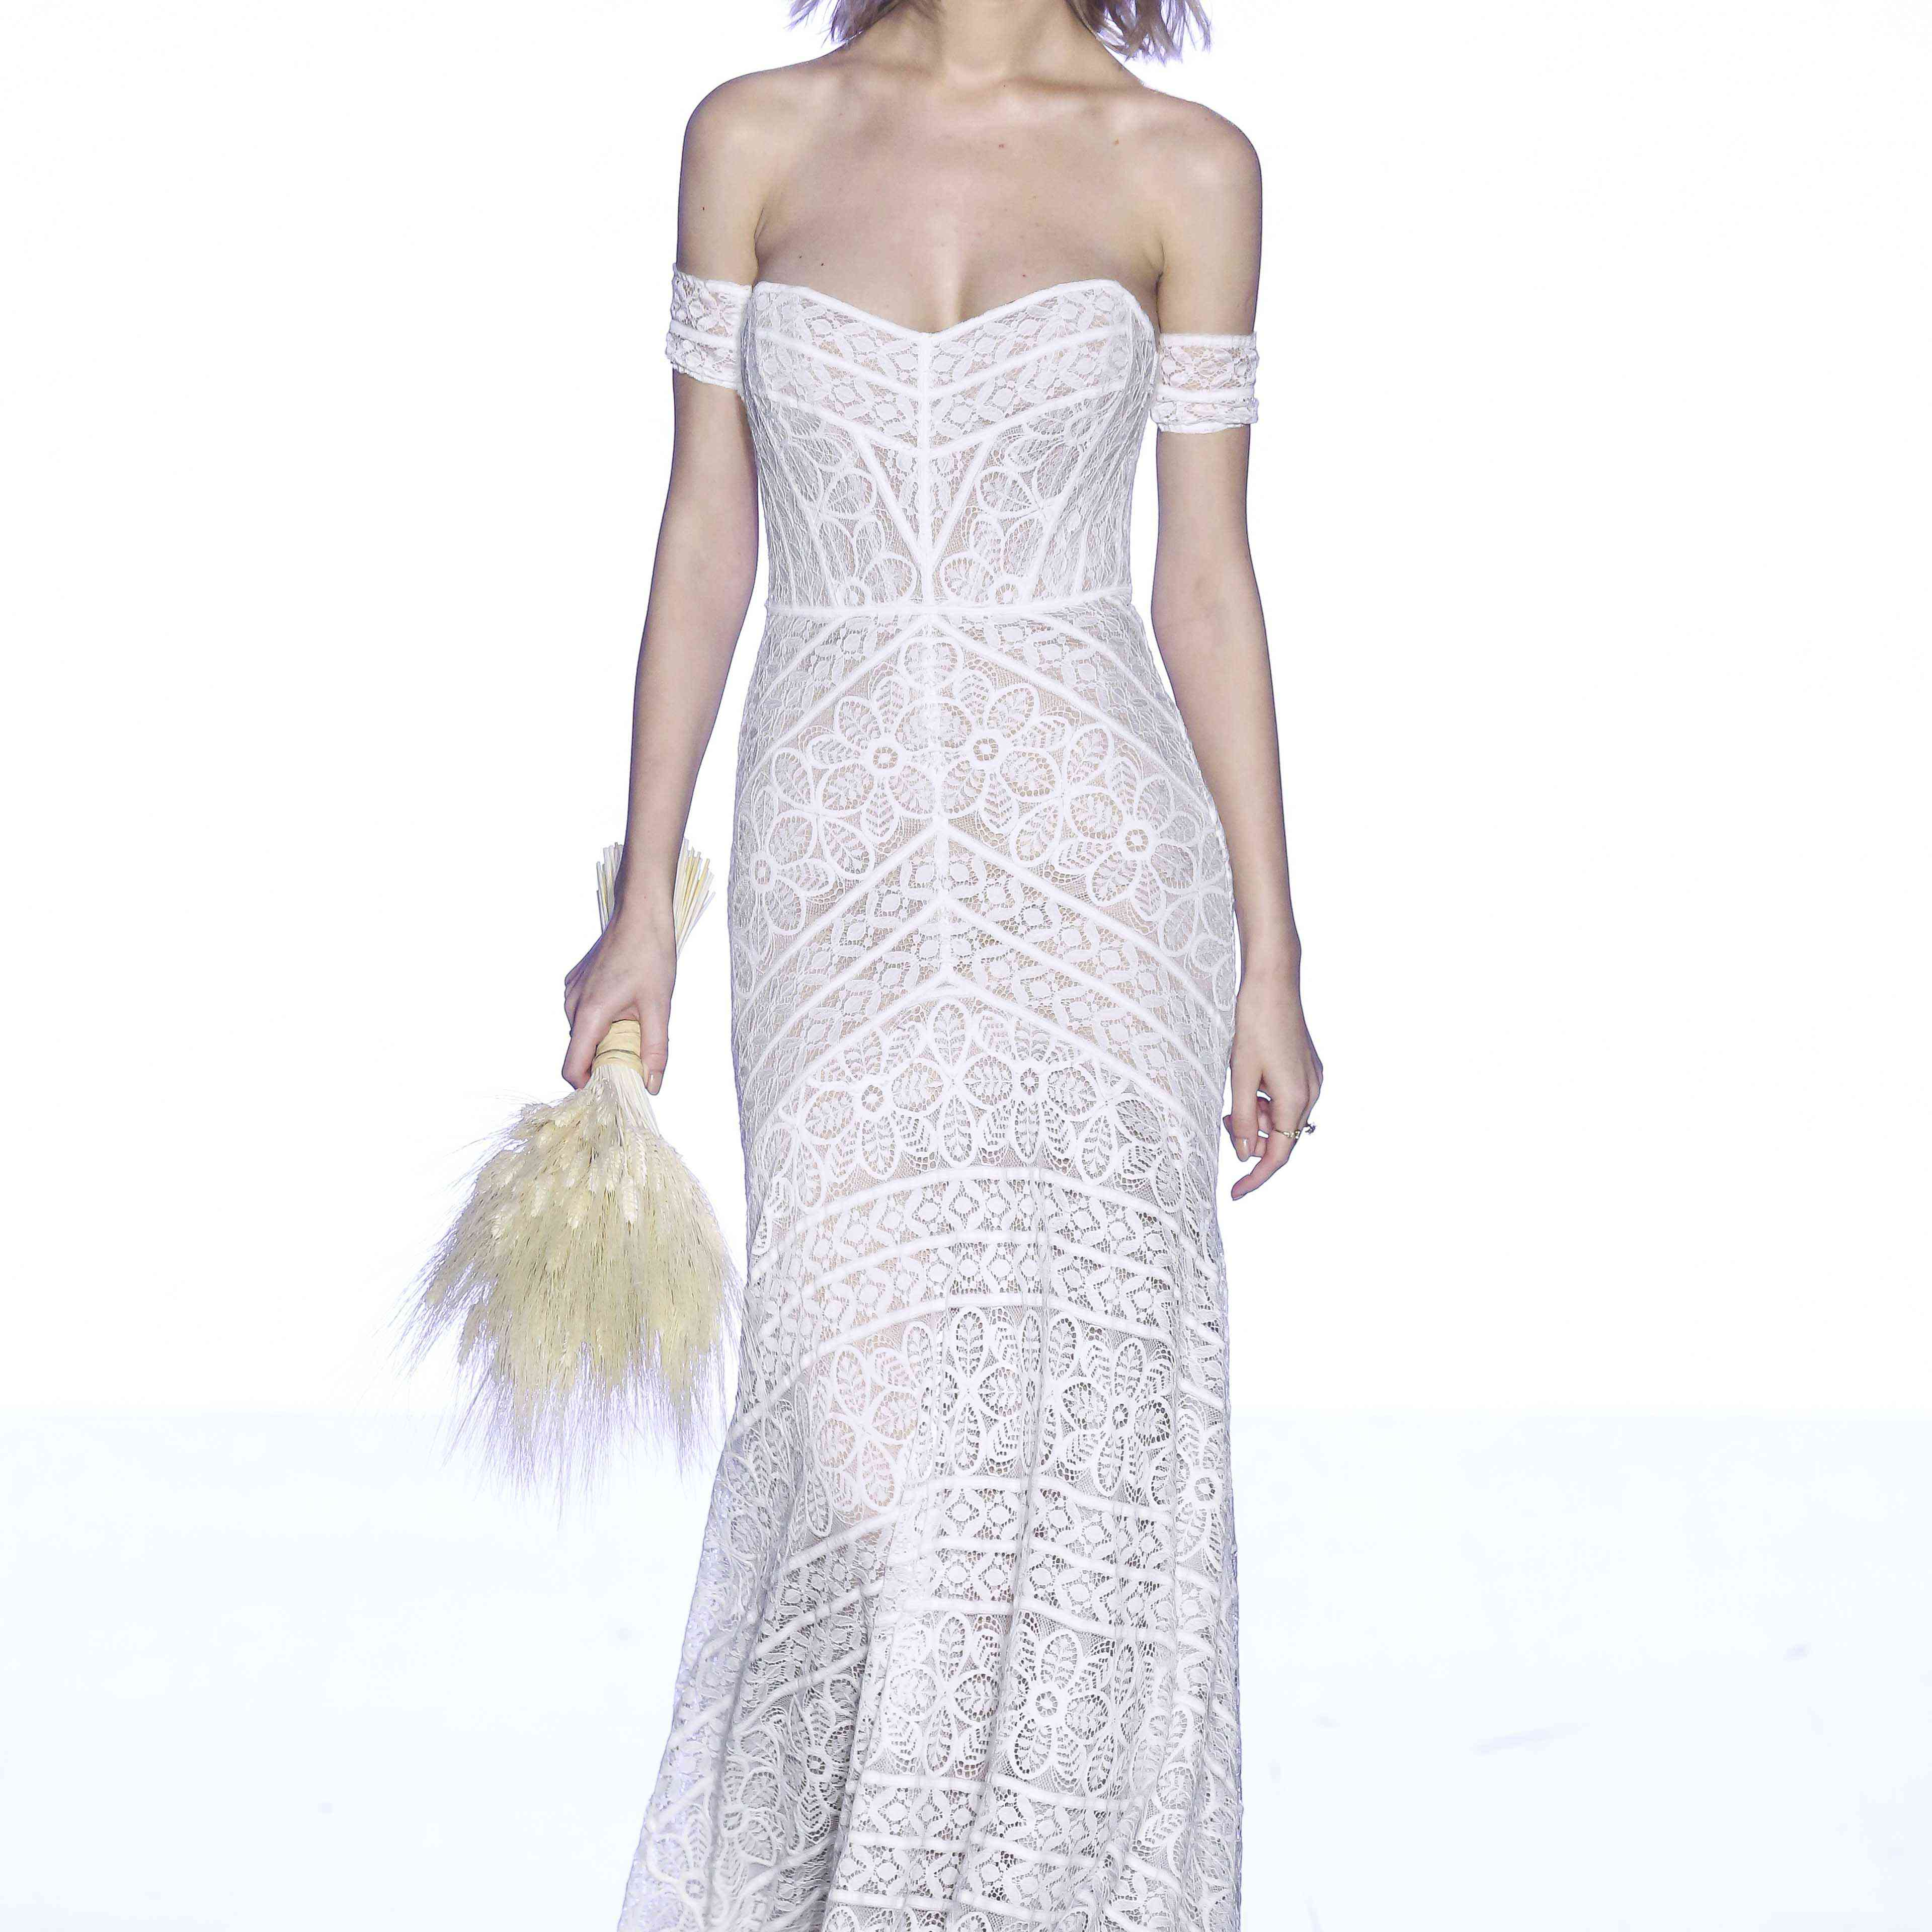 Model in strapless lace gown with off-shoulder band sleeves